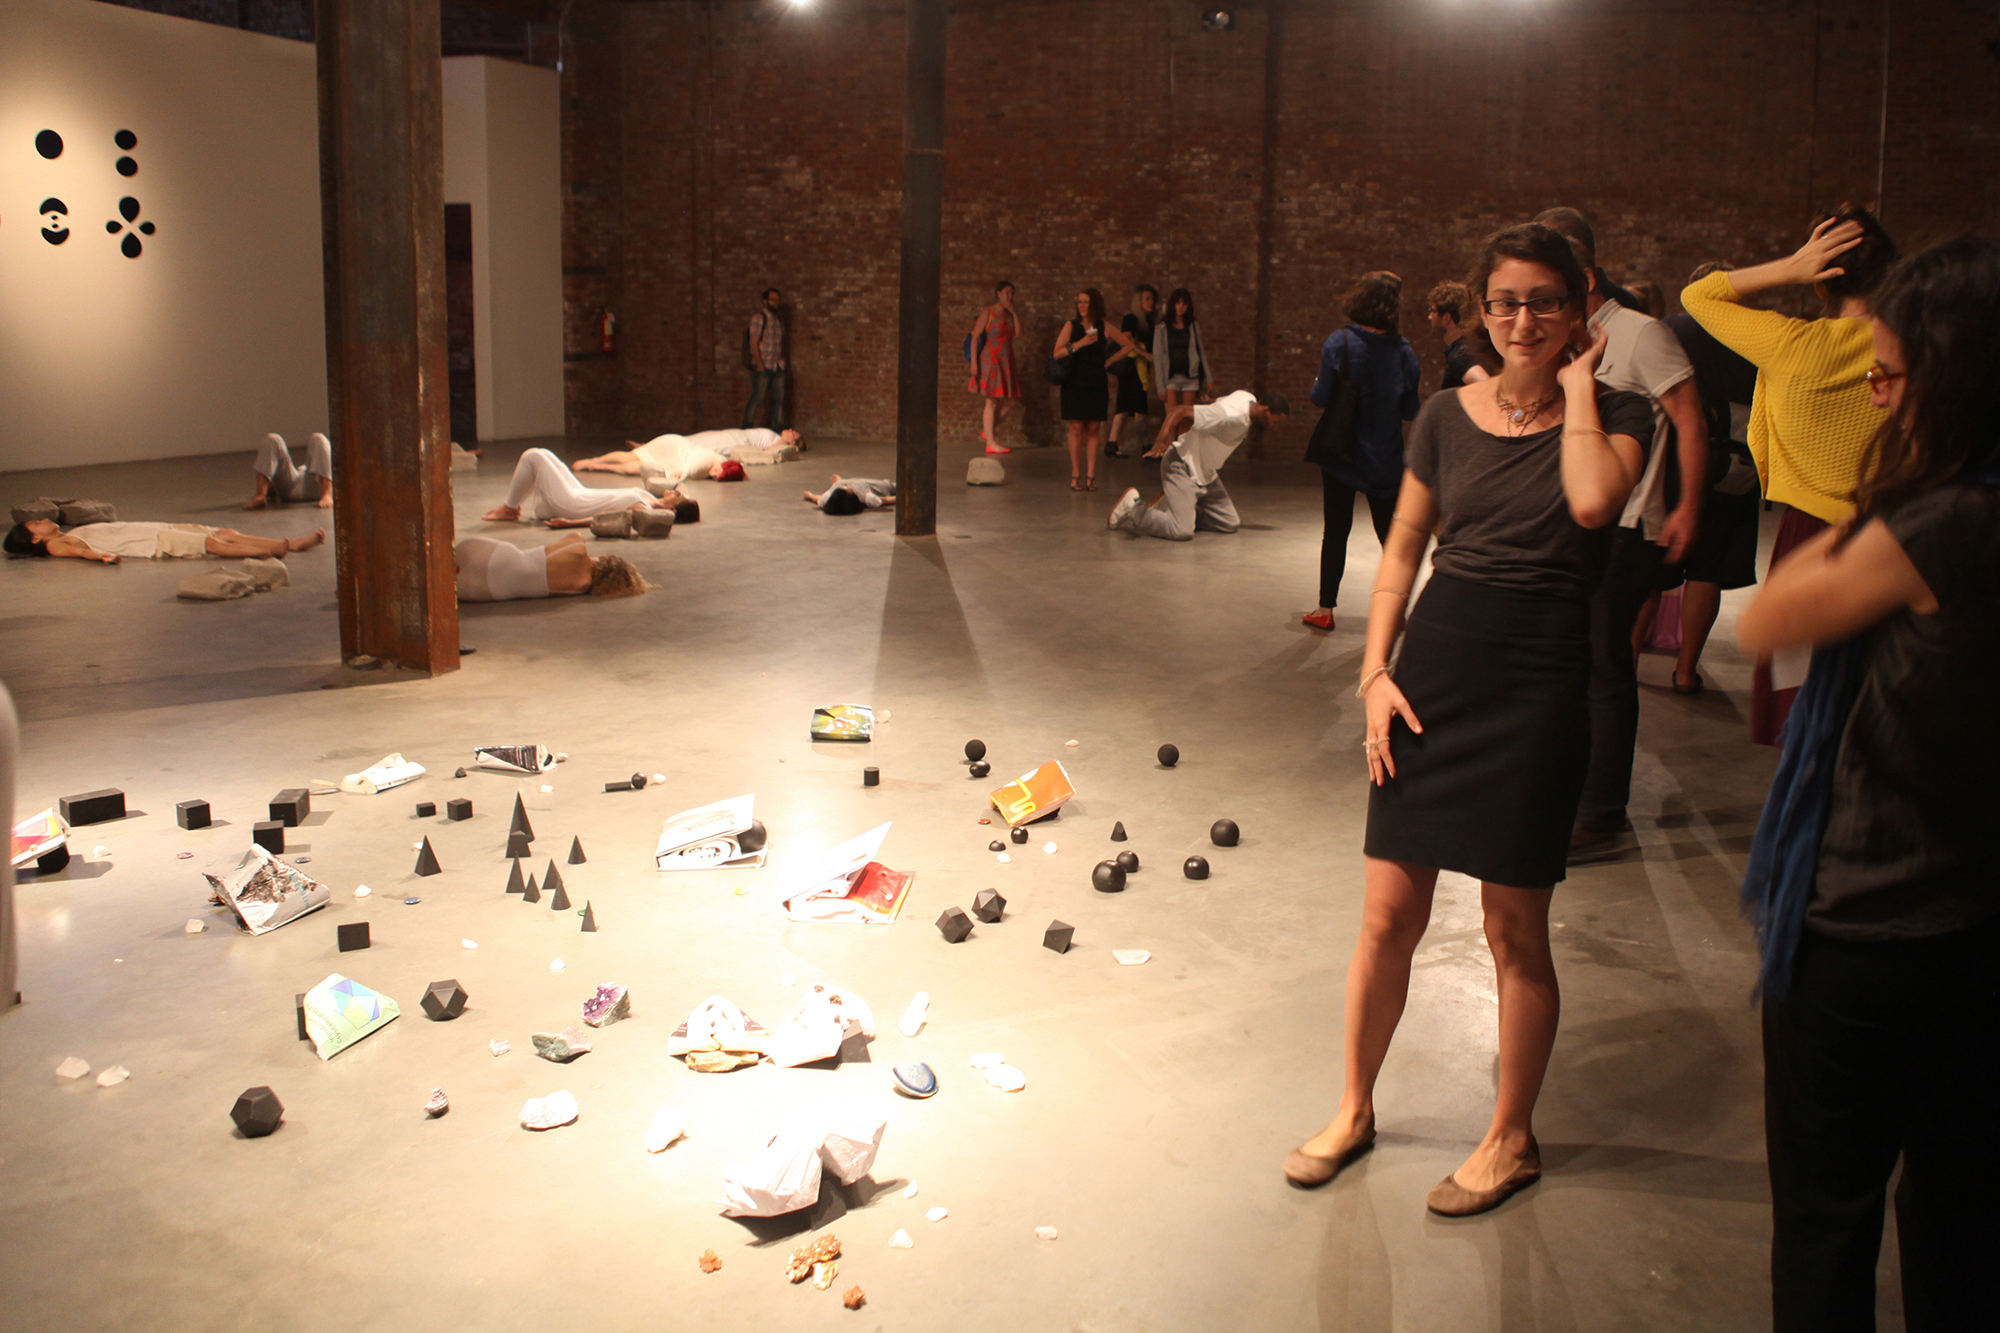 When All Thing Evaporate, We'll Talk About Minerals  Performance, 2014